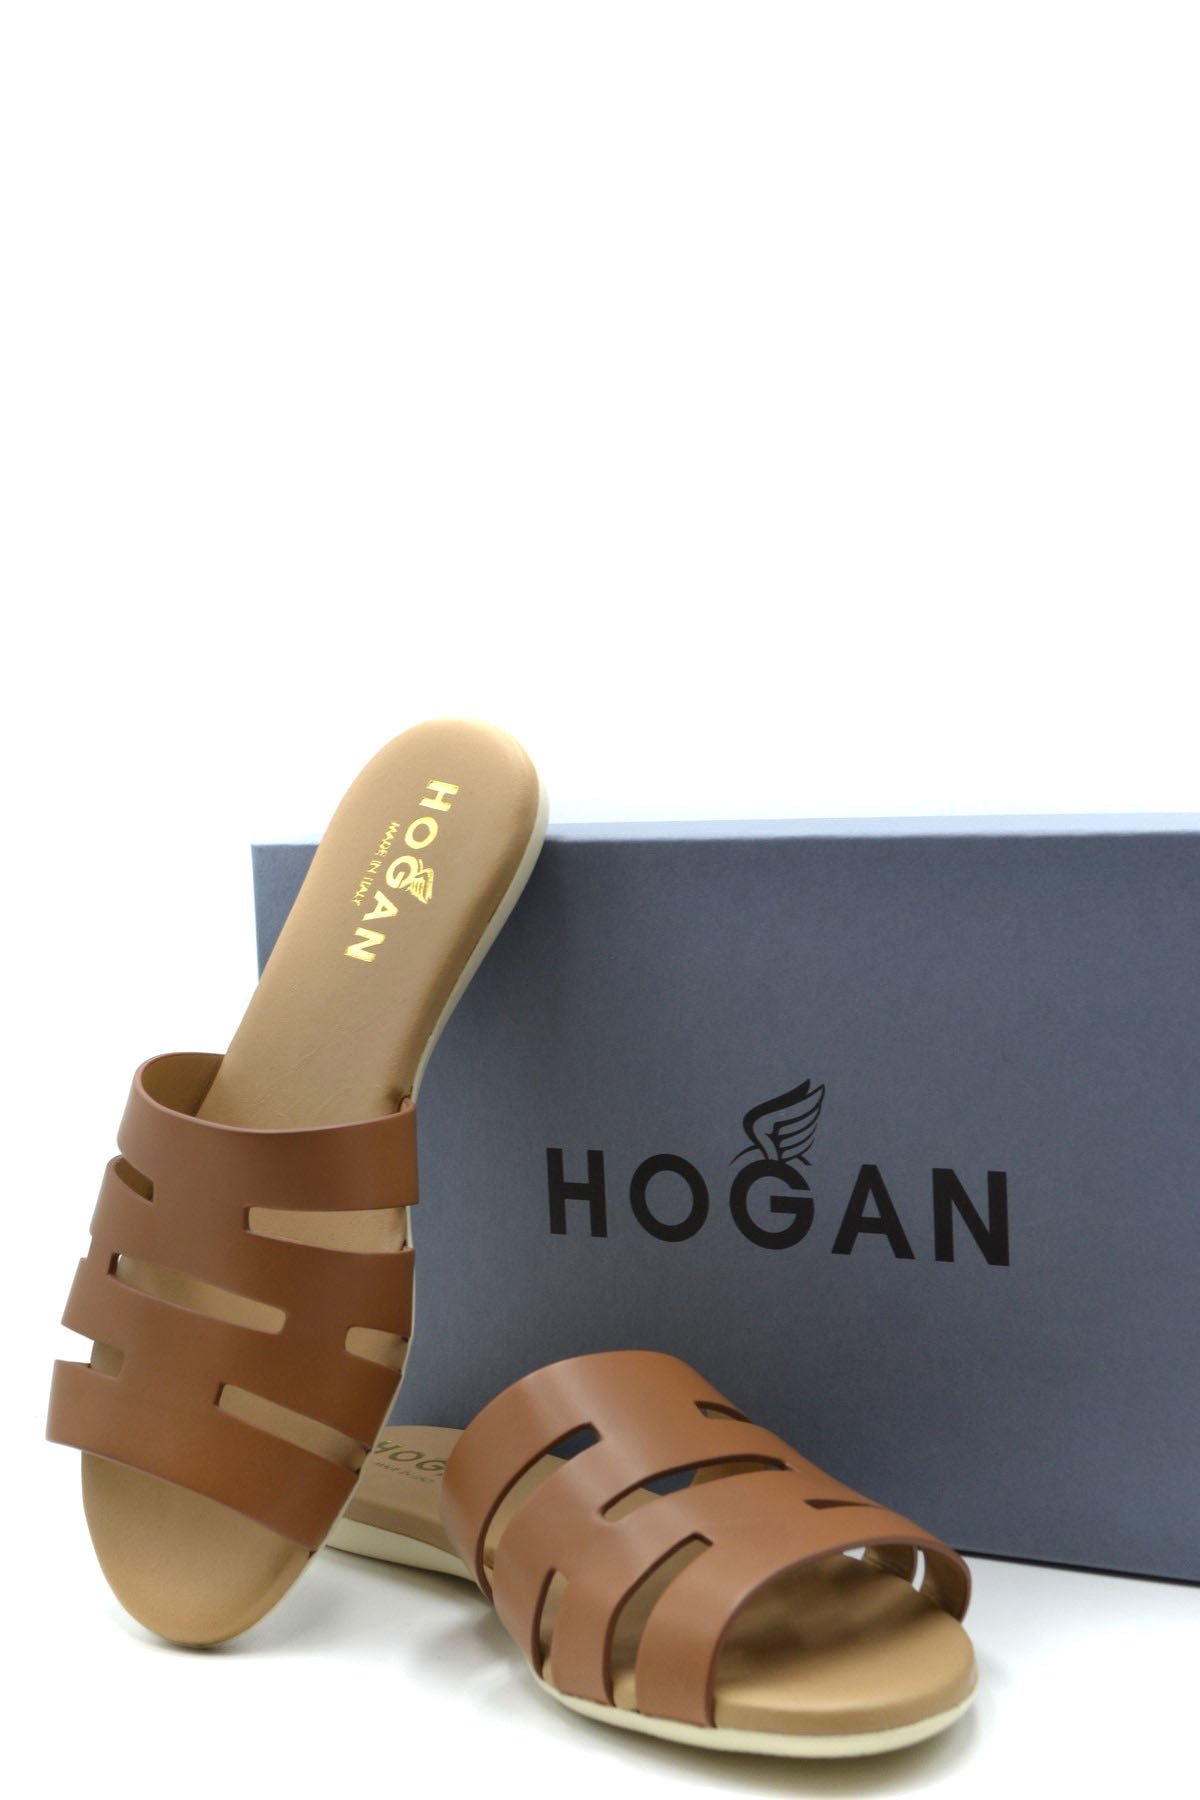 Hogan--Product Details Type Of Accessory: ShoesTerms: New With LabelYear: 2019Main Color: MarrónGender: WomanMade In: ItalyManufacturer Part Number: Hxw1330Bi90D0Wc801Size: EuSeason: Spring / SummerComposition: Leather 100%-Keyomi-Sook